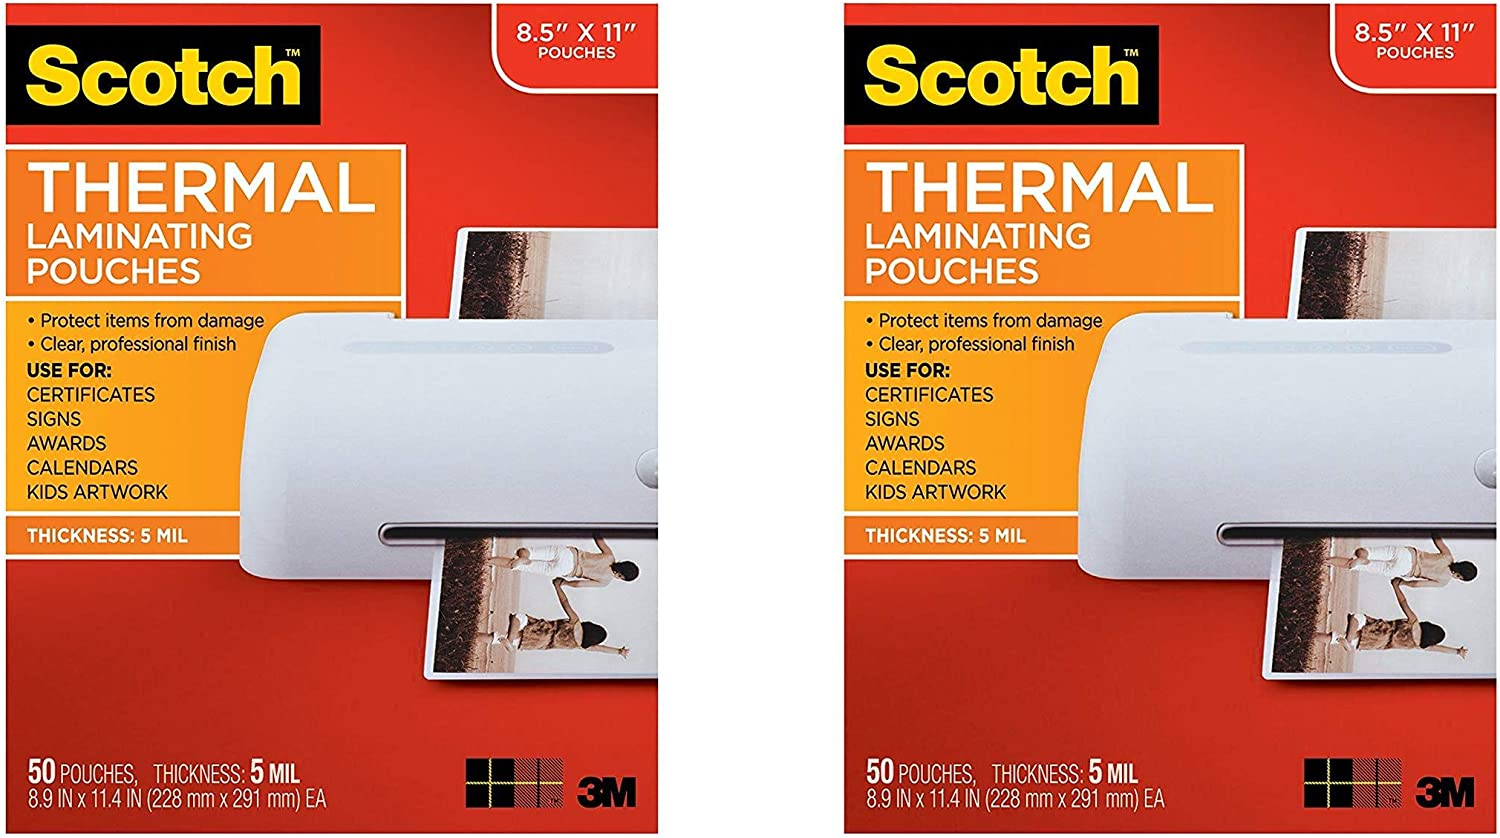 Letter Size Sheets 100-Pack Clear Scotch Brand Thermal Laminating Pouches TP5854-100 8.9 x 11.4 inches - 3 Pack 5 Mil Thick for Extra Protection